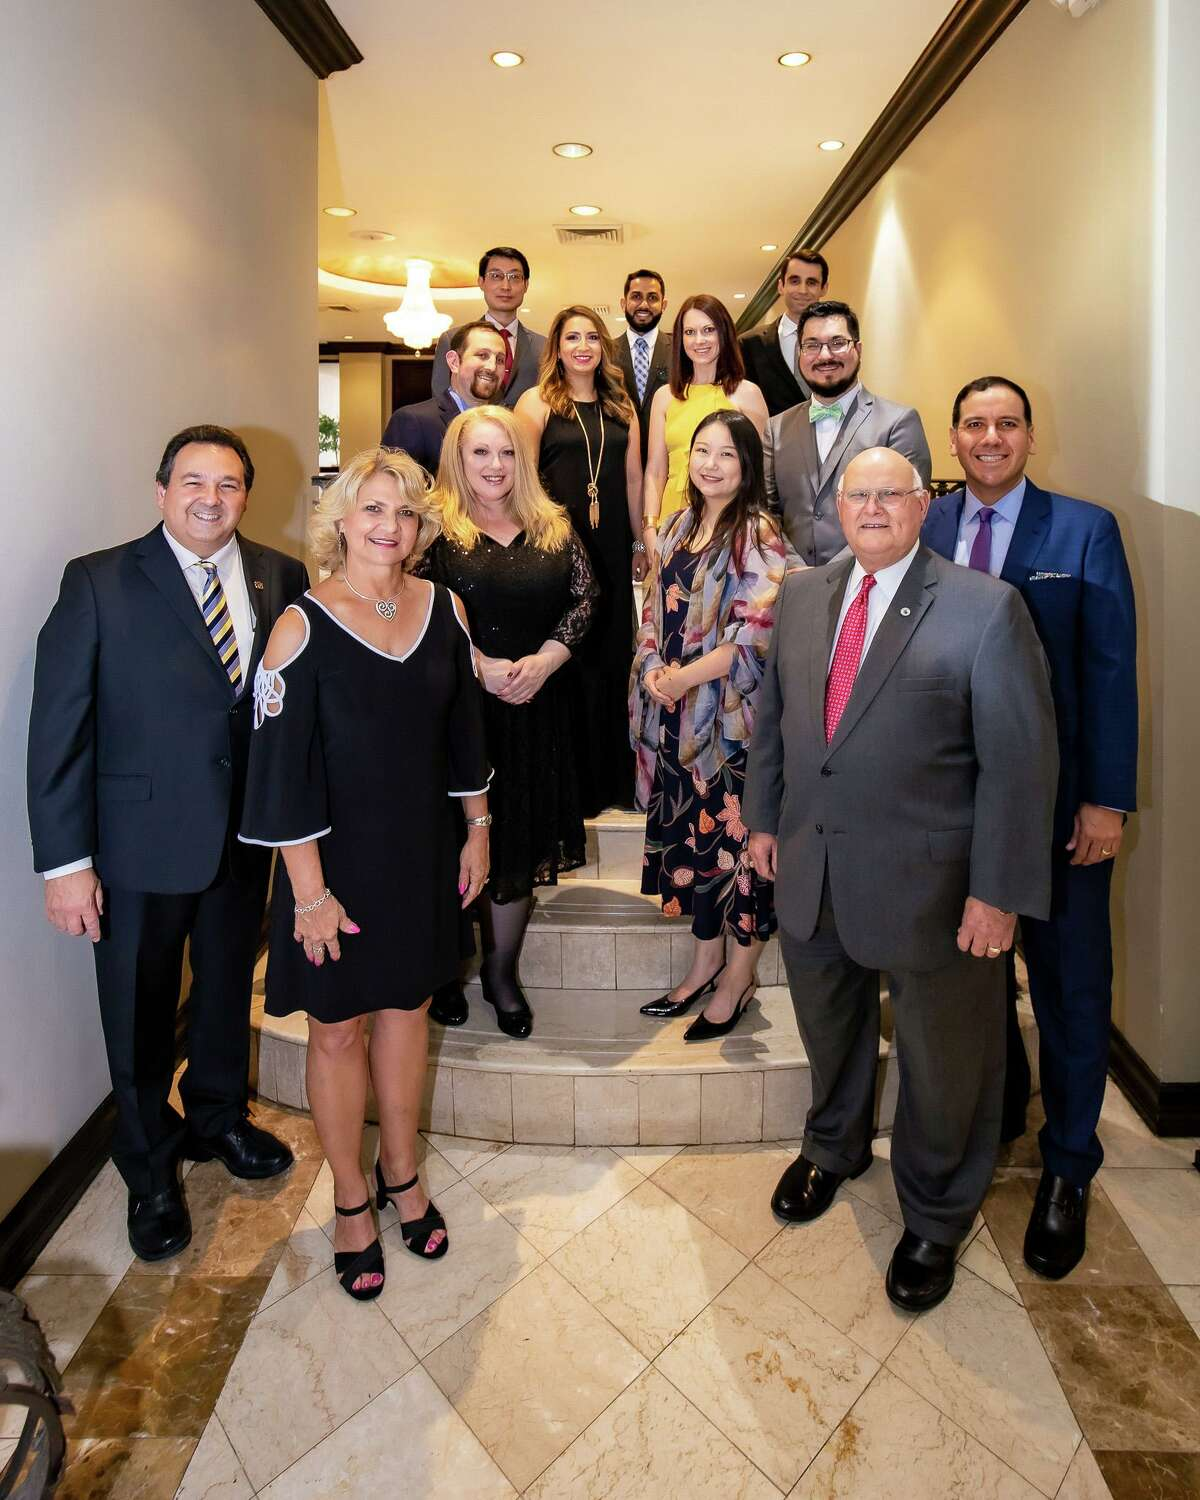 The founding cohort of Resident Physicians from the Family Medicine Residency Program is pictured with leaders from Laredo Medical Center, University of the Incarnate Word School of Osteopathic Medicine and Gateway Community Health Center.